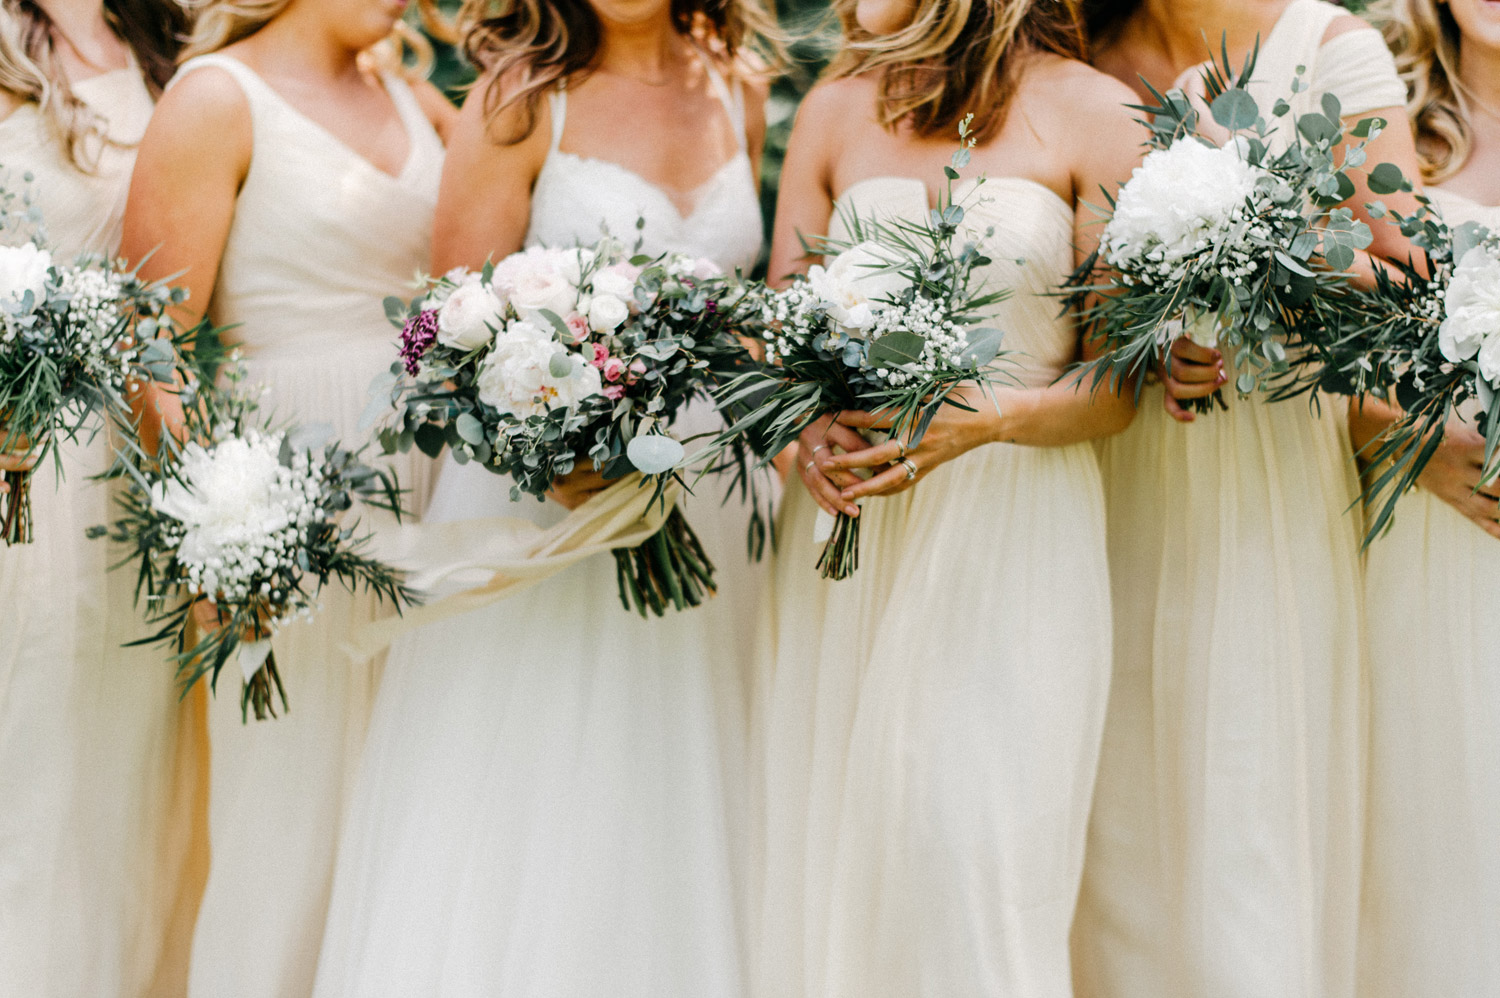 Bridesmaids floral arrangements at minnetonka orchards